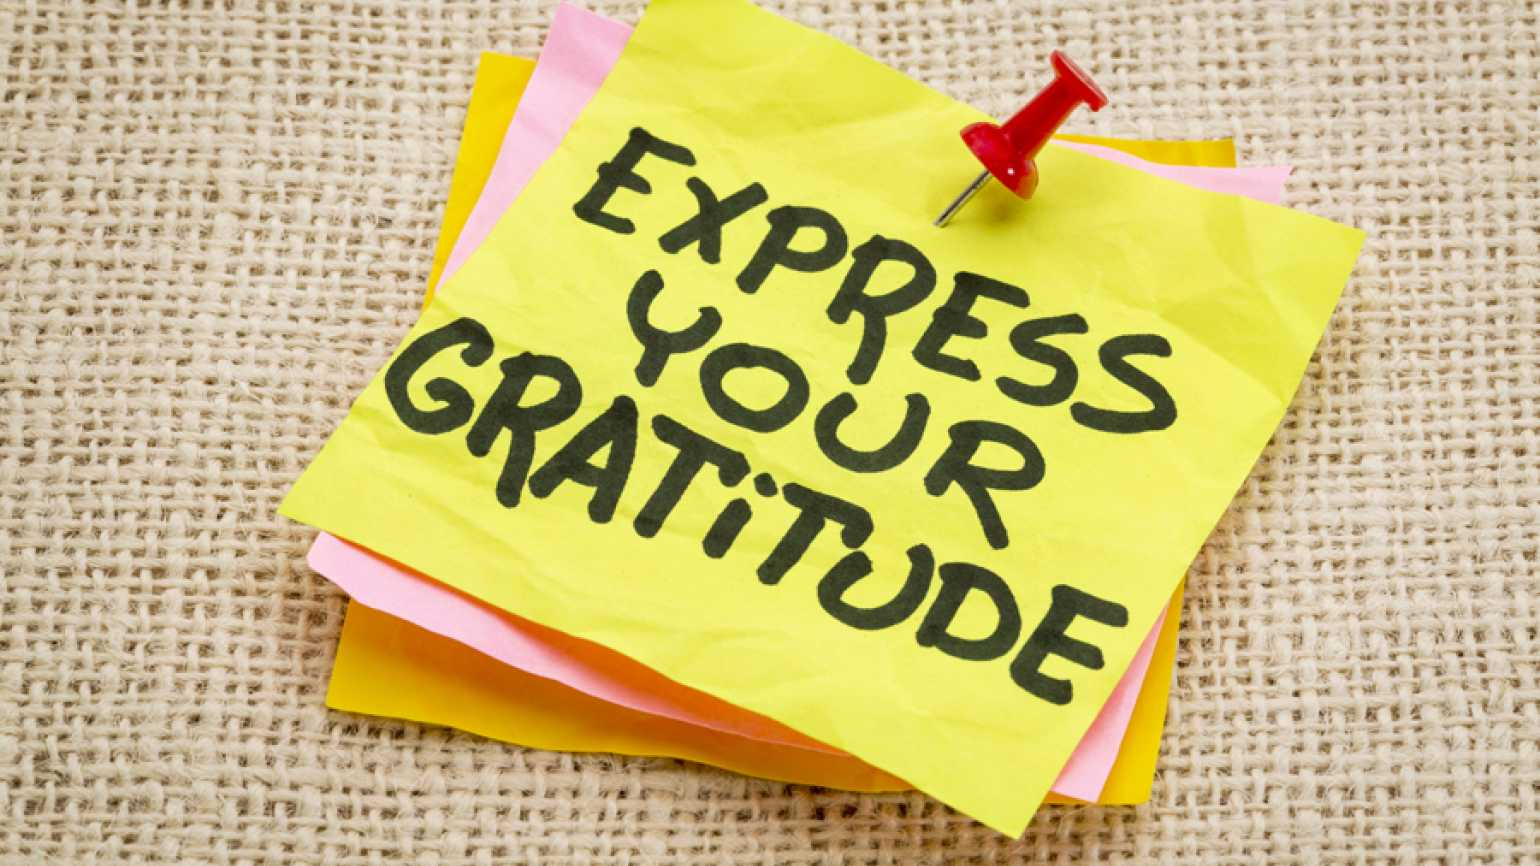 How to Make Gratitude a Lifestyle